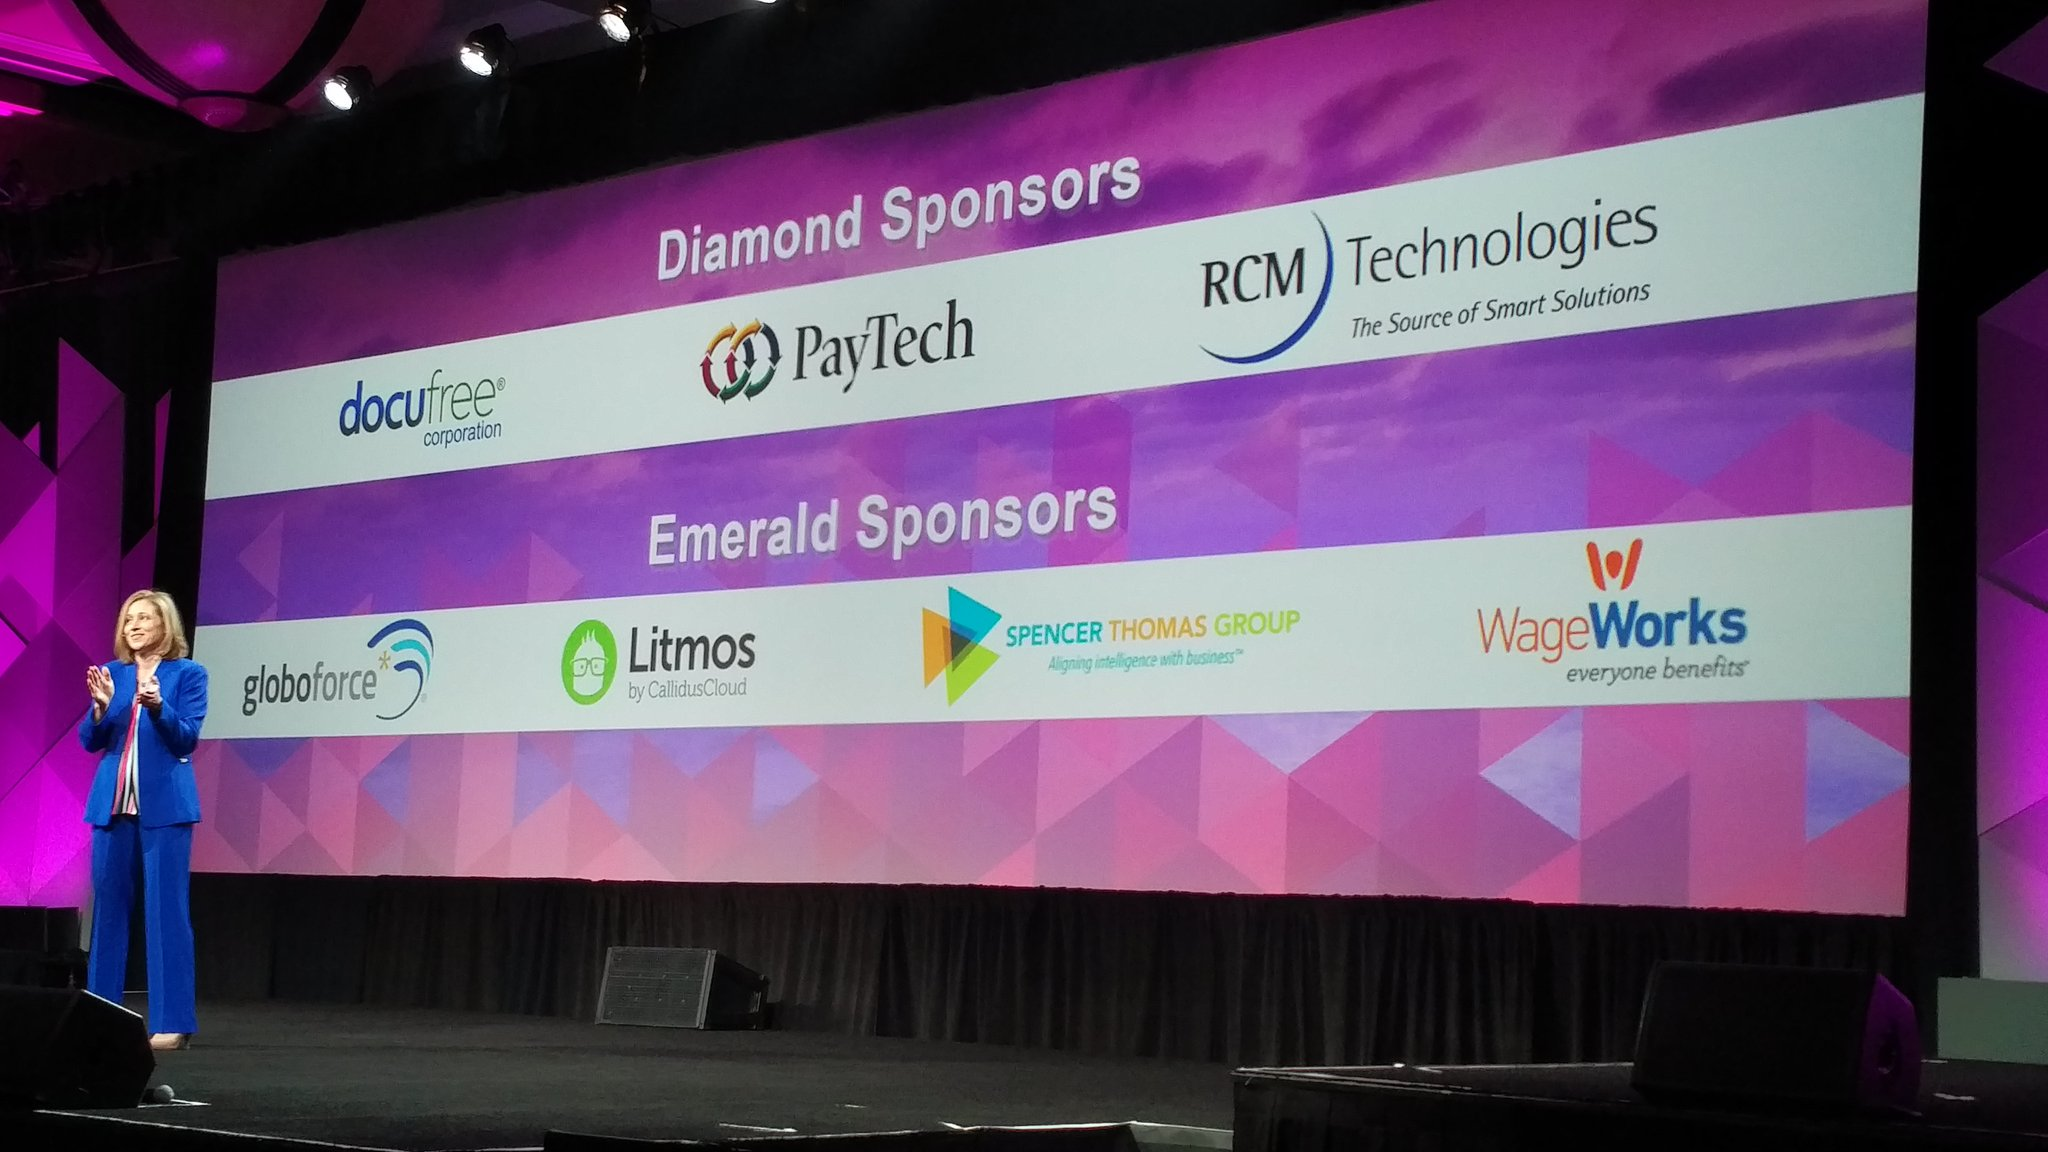 And the mandatory thanks to sponsors #ADPMOTM https://t.co/0fh7gBA4aT